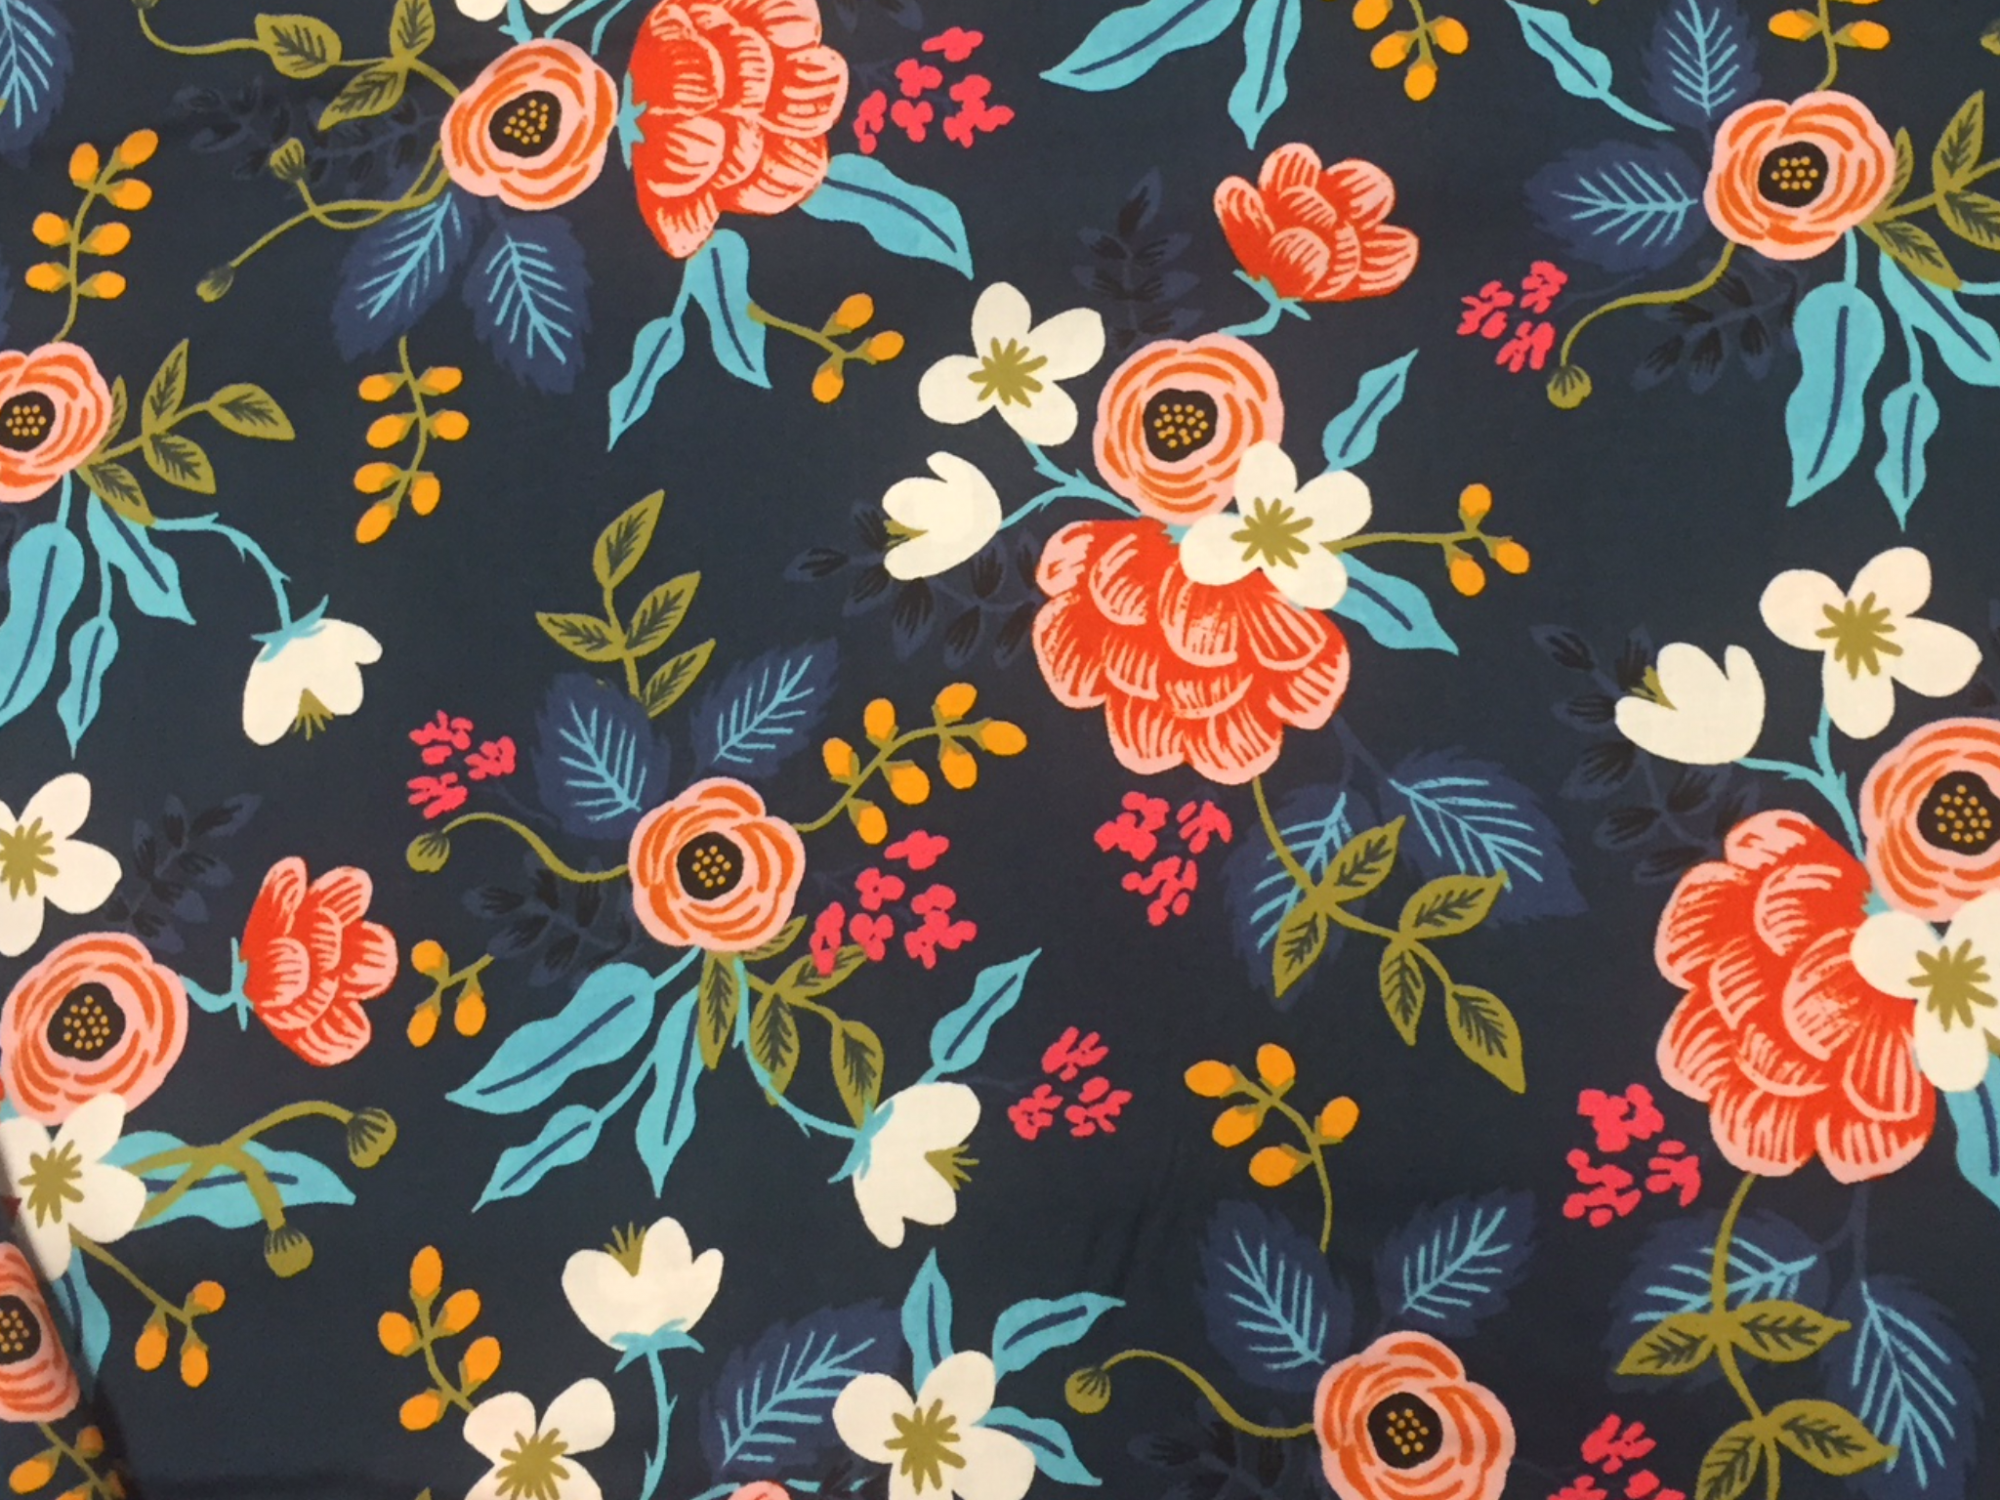 BACKORDERED Cotton + Steel Rifle Paper Company Les Fleurs Floral Navy Rayon Fabric